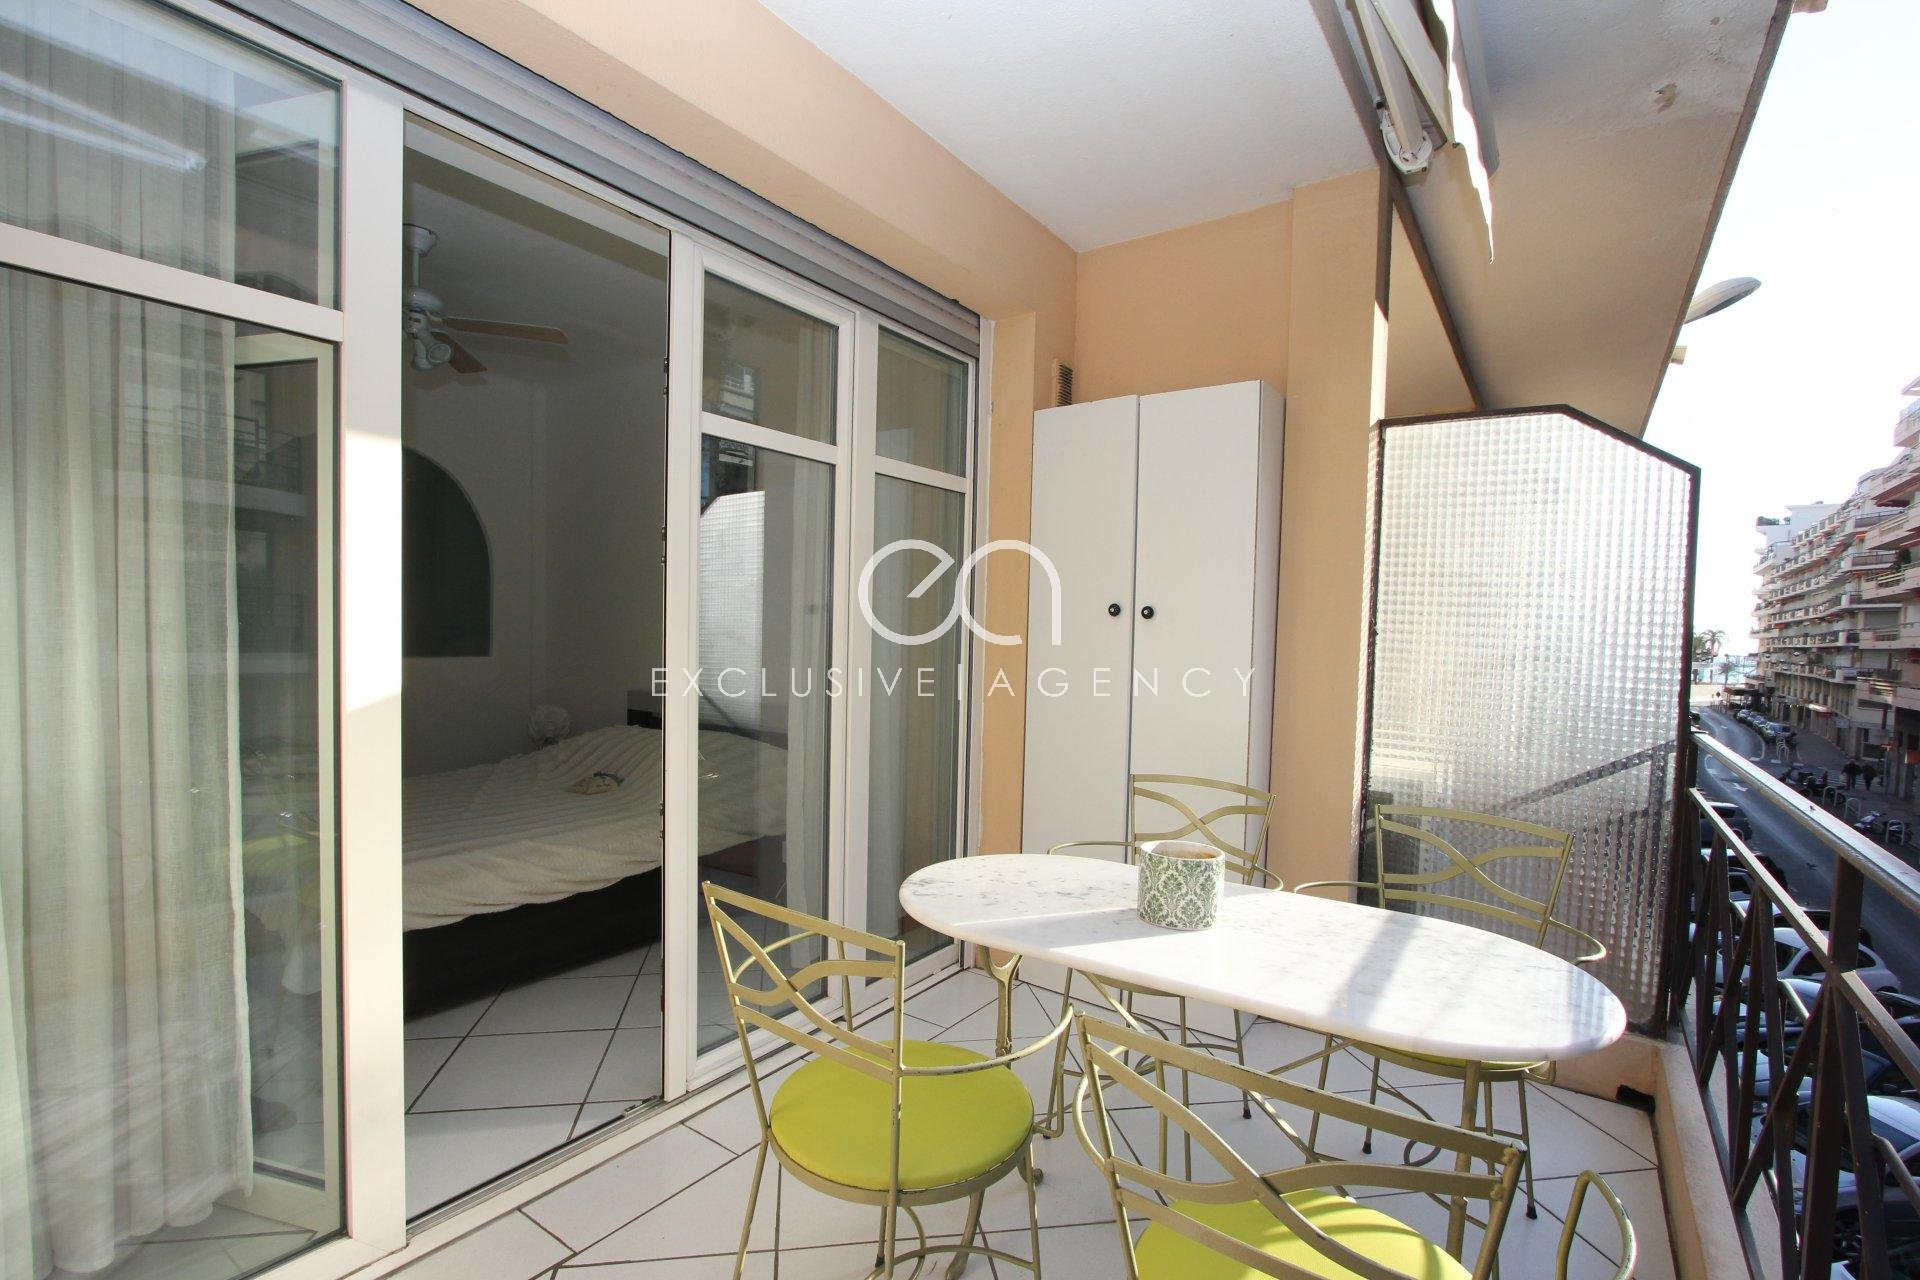 For sale Cannes 1-bedroom apartment of 42m² with terrace of 8,5m².